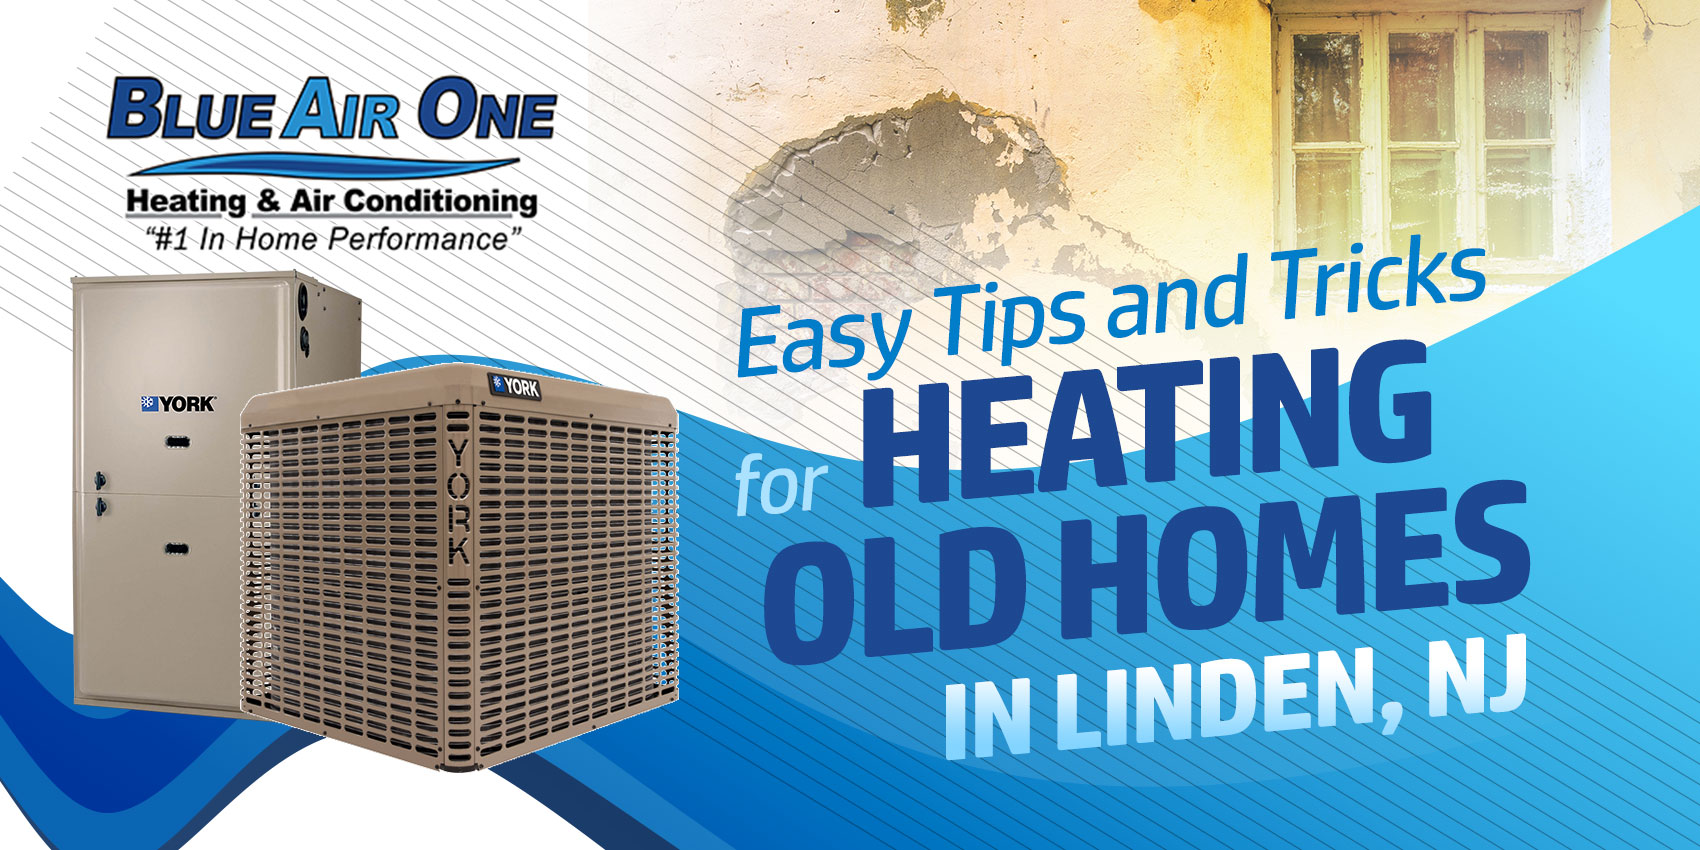 Easy Tips and Tricks for Heating Old Homes in Linden NJ